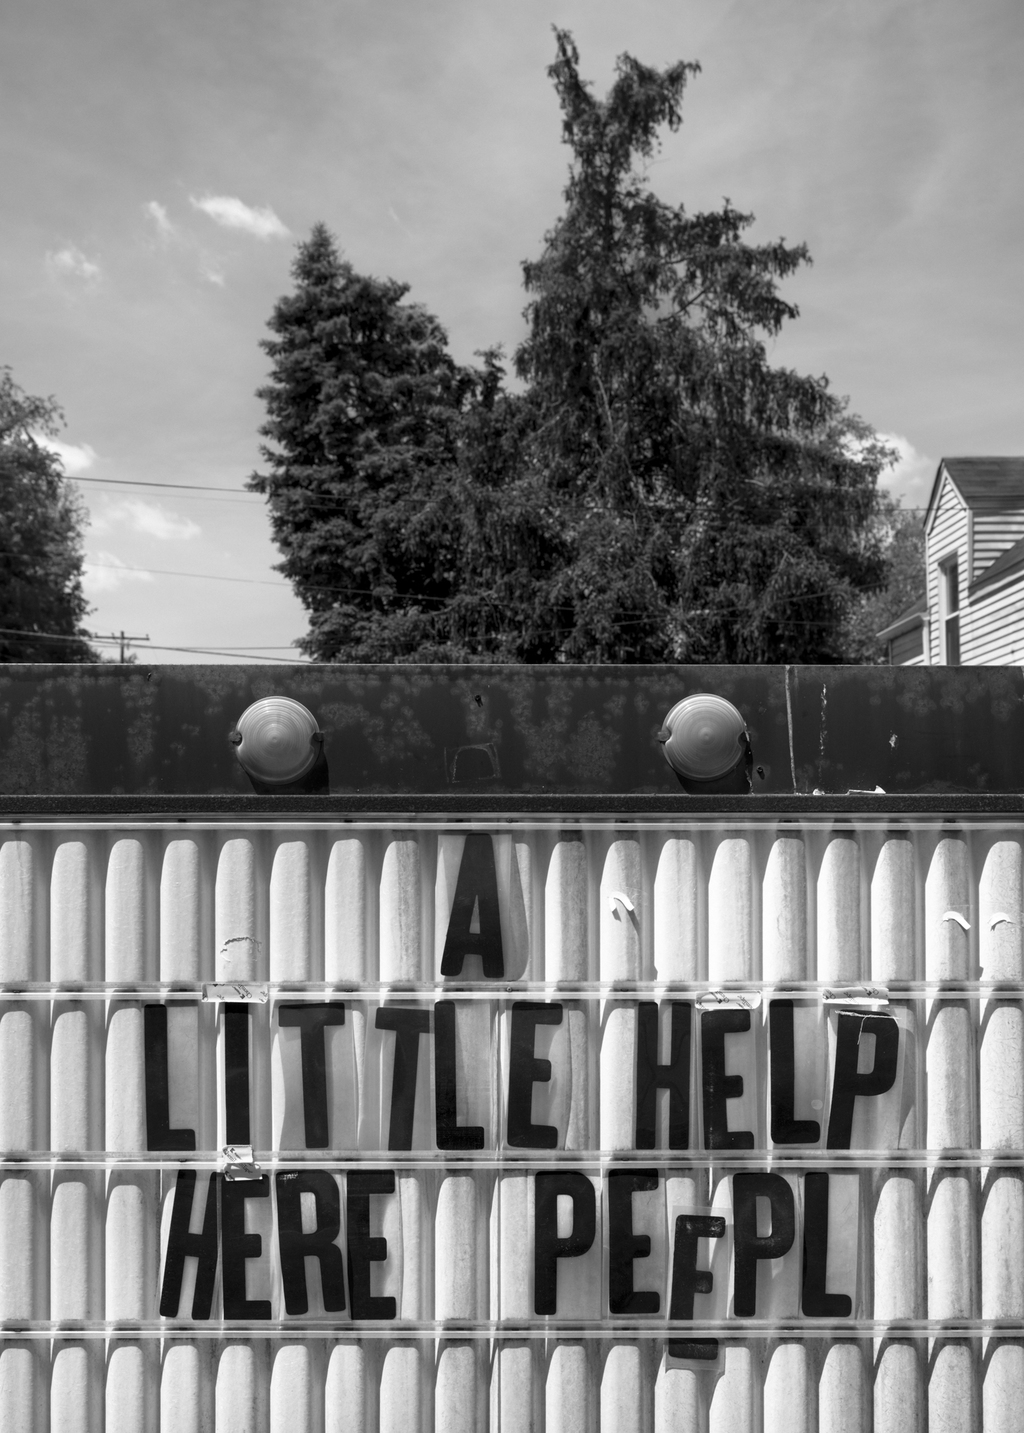 A Little Help Here People, 2013. ©Timothy Briner